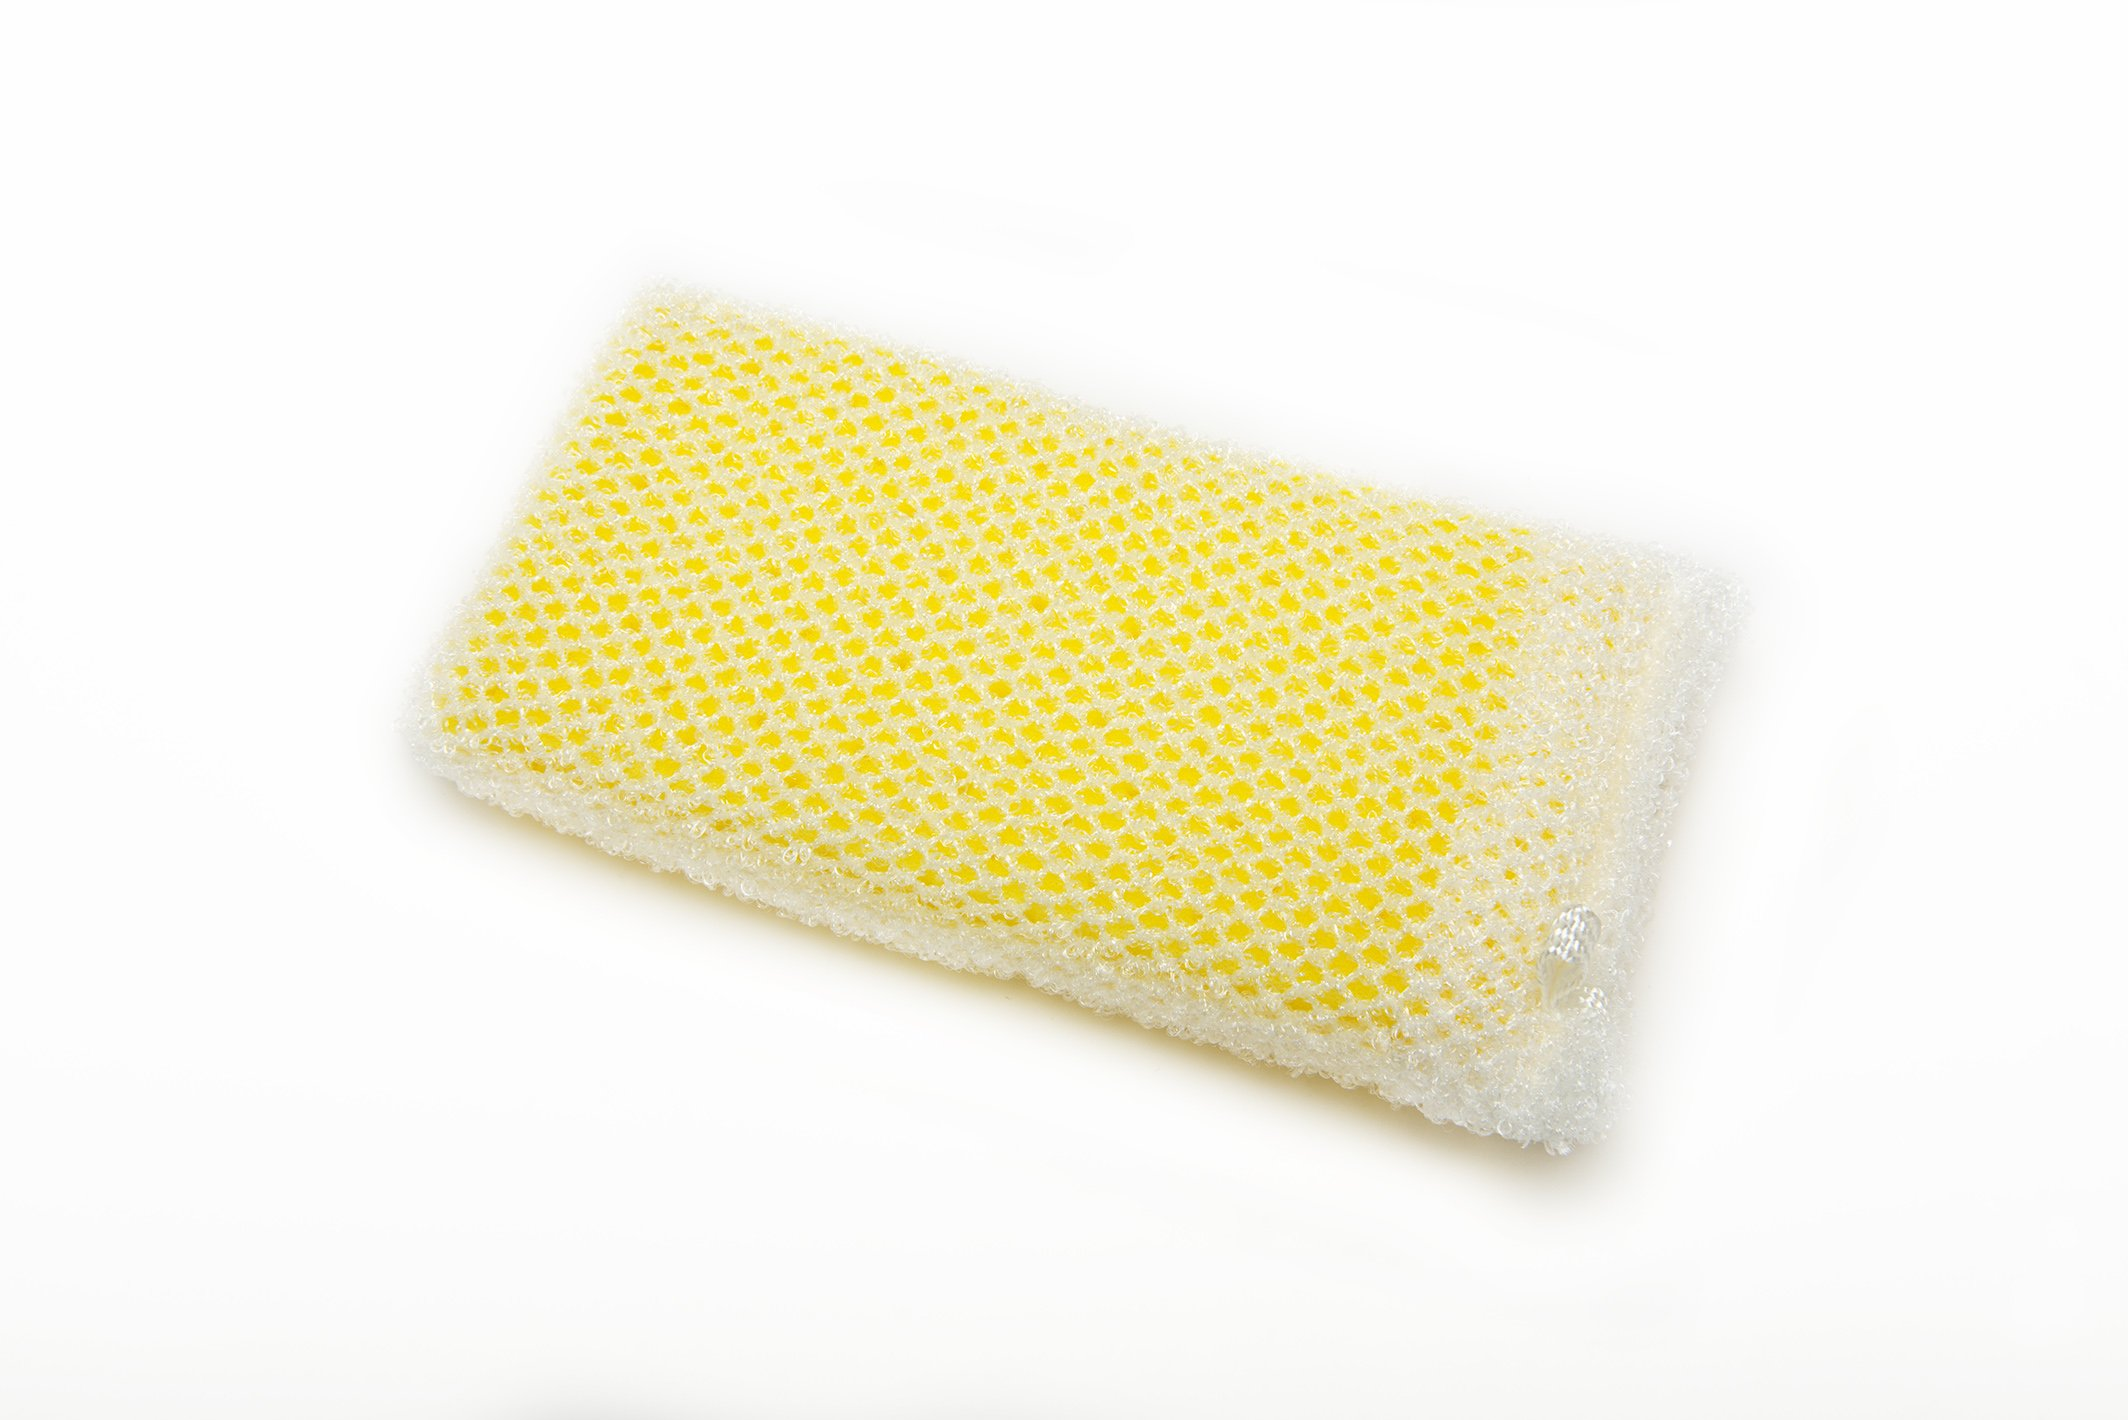 AISEN KS303Y 2 Count Foam and Scrub Sponges (12 Pack), Yellow by AISEN (Image #1)